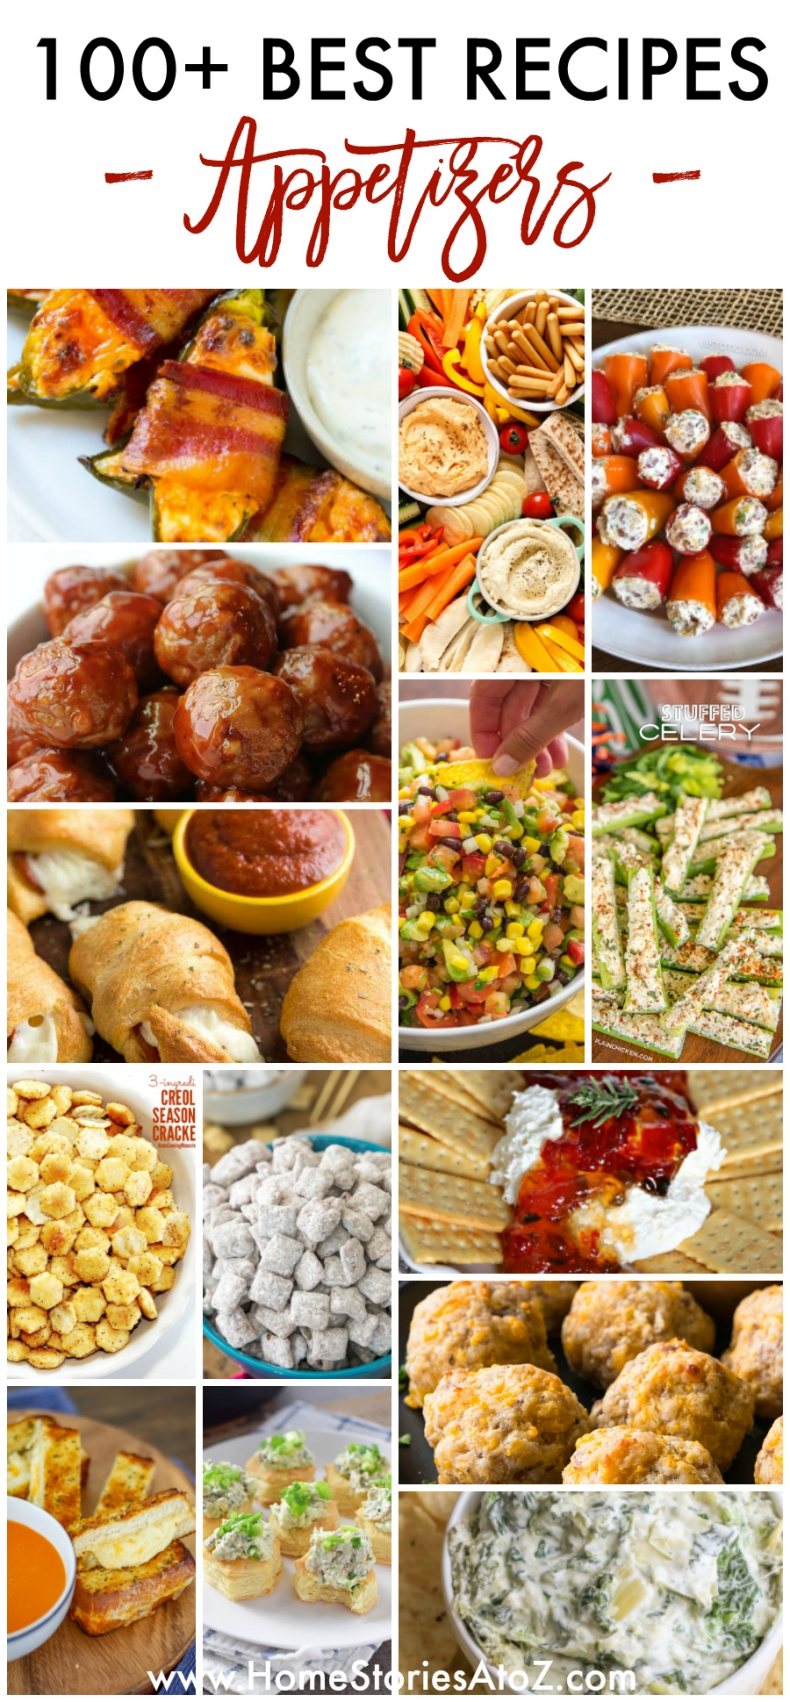 100+ Best Appetizer Recipes Meats, Dips, Cheeses, Vegetables, Breads, Snacks, and Air Fryer Recipes